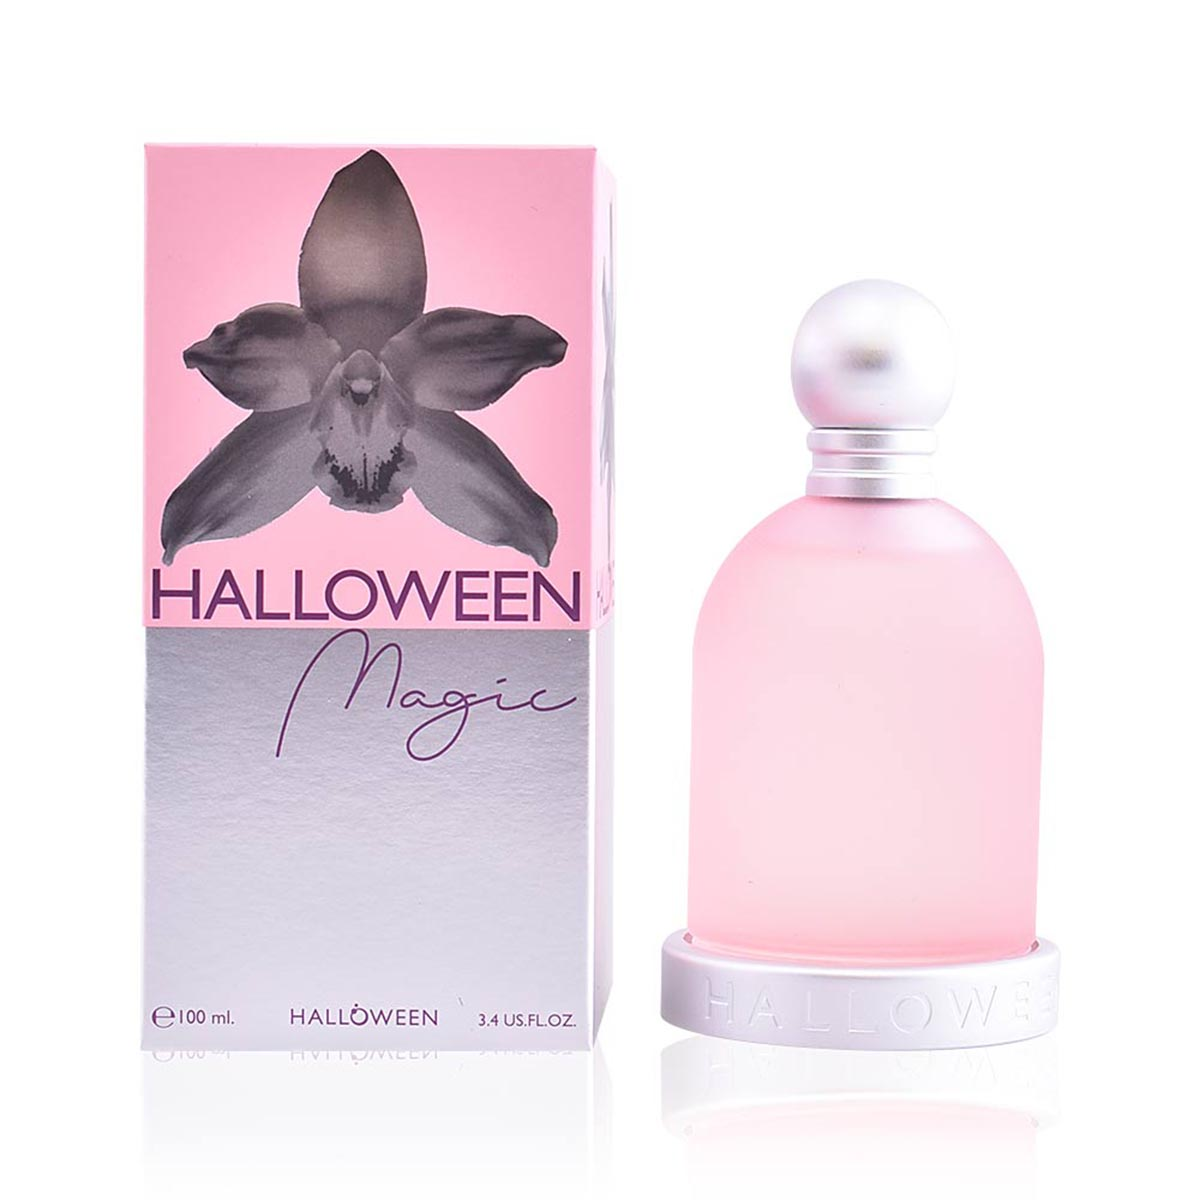 Jesus del pozo halloween magic eau de toilette 100ml vaporizador